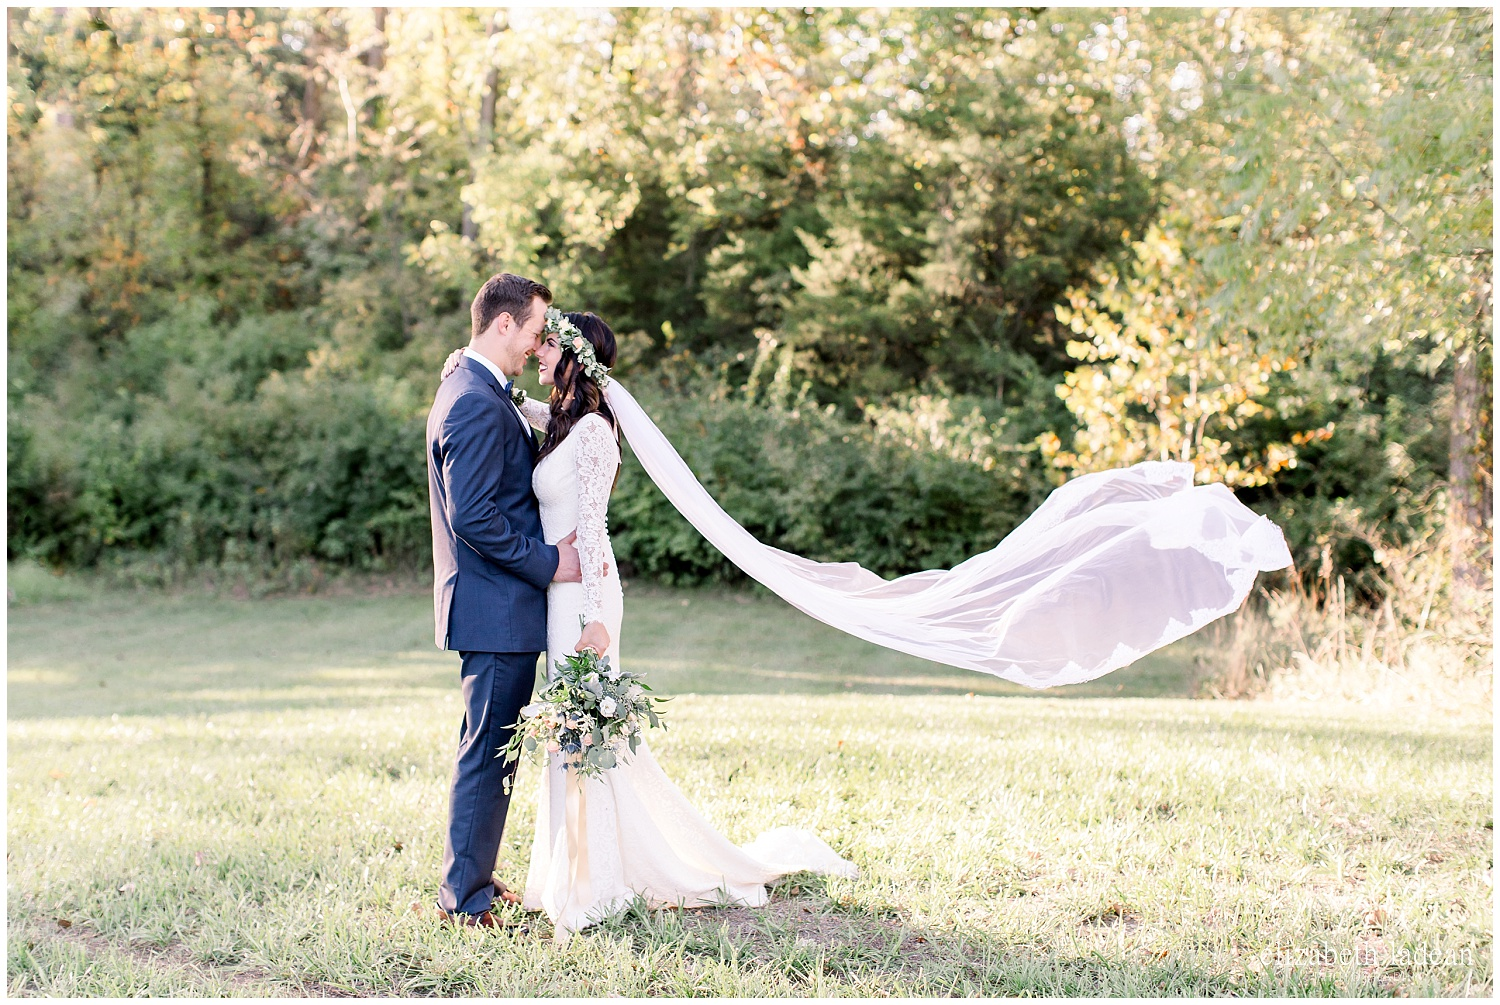 -behind-the-scenes-of-a-wedding-photographer-2018-elizabeth-ladean-photography-photo_3545.jpg